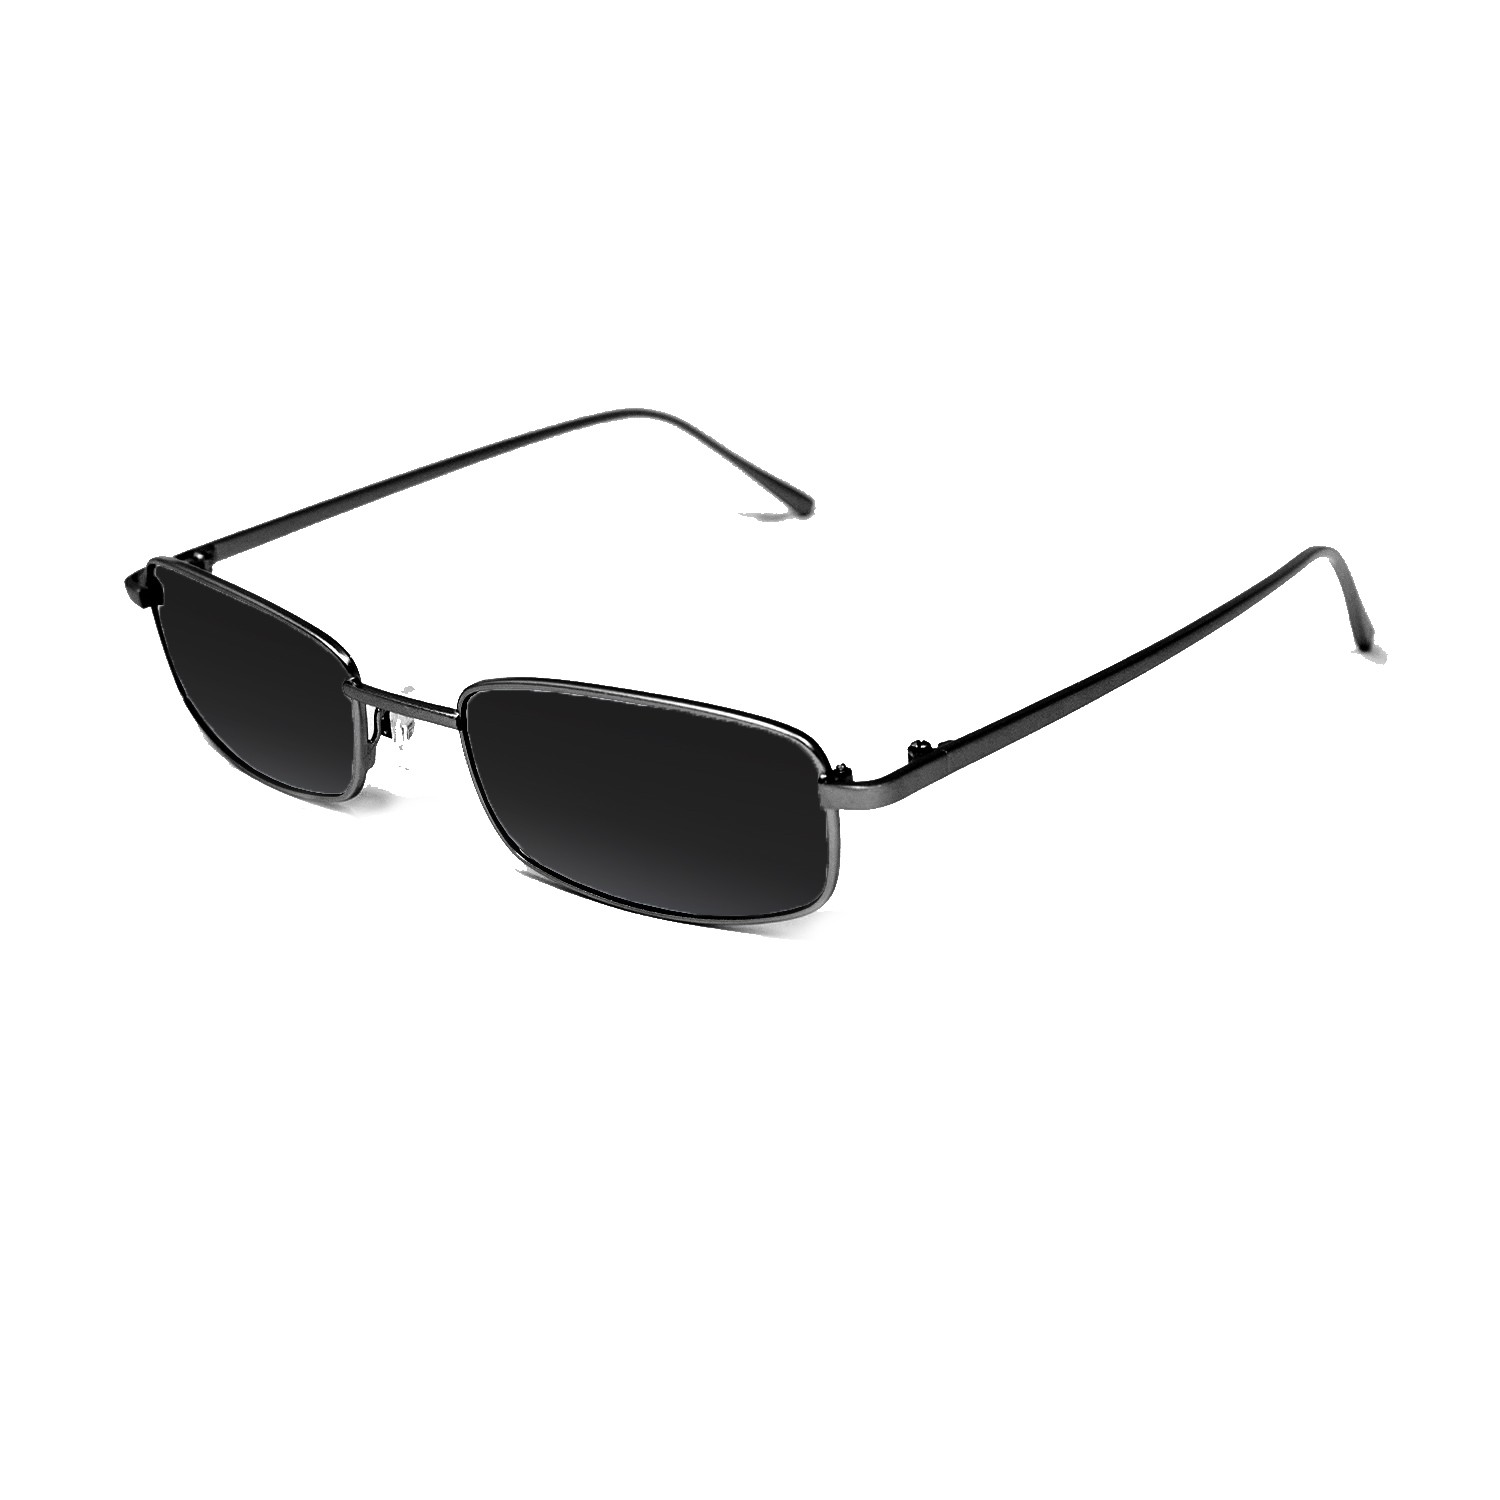 DYLAN black metal frame with smoke lens